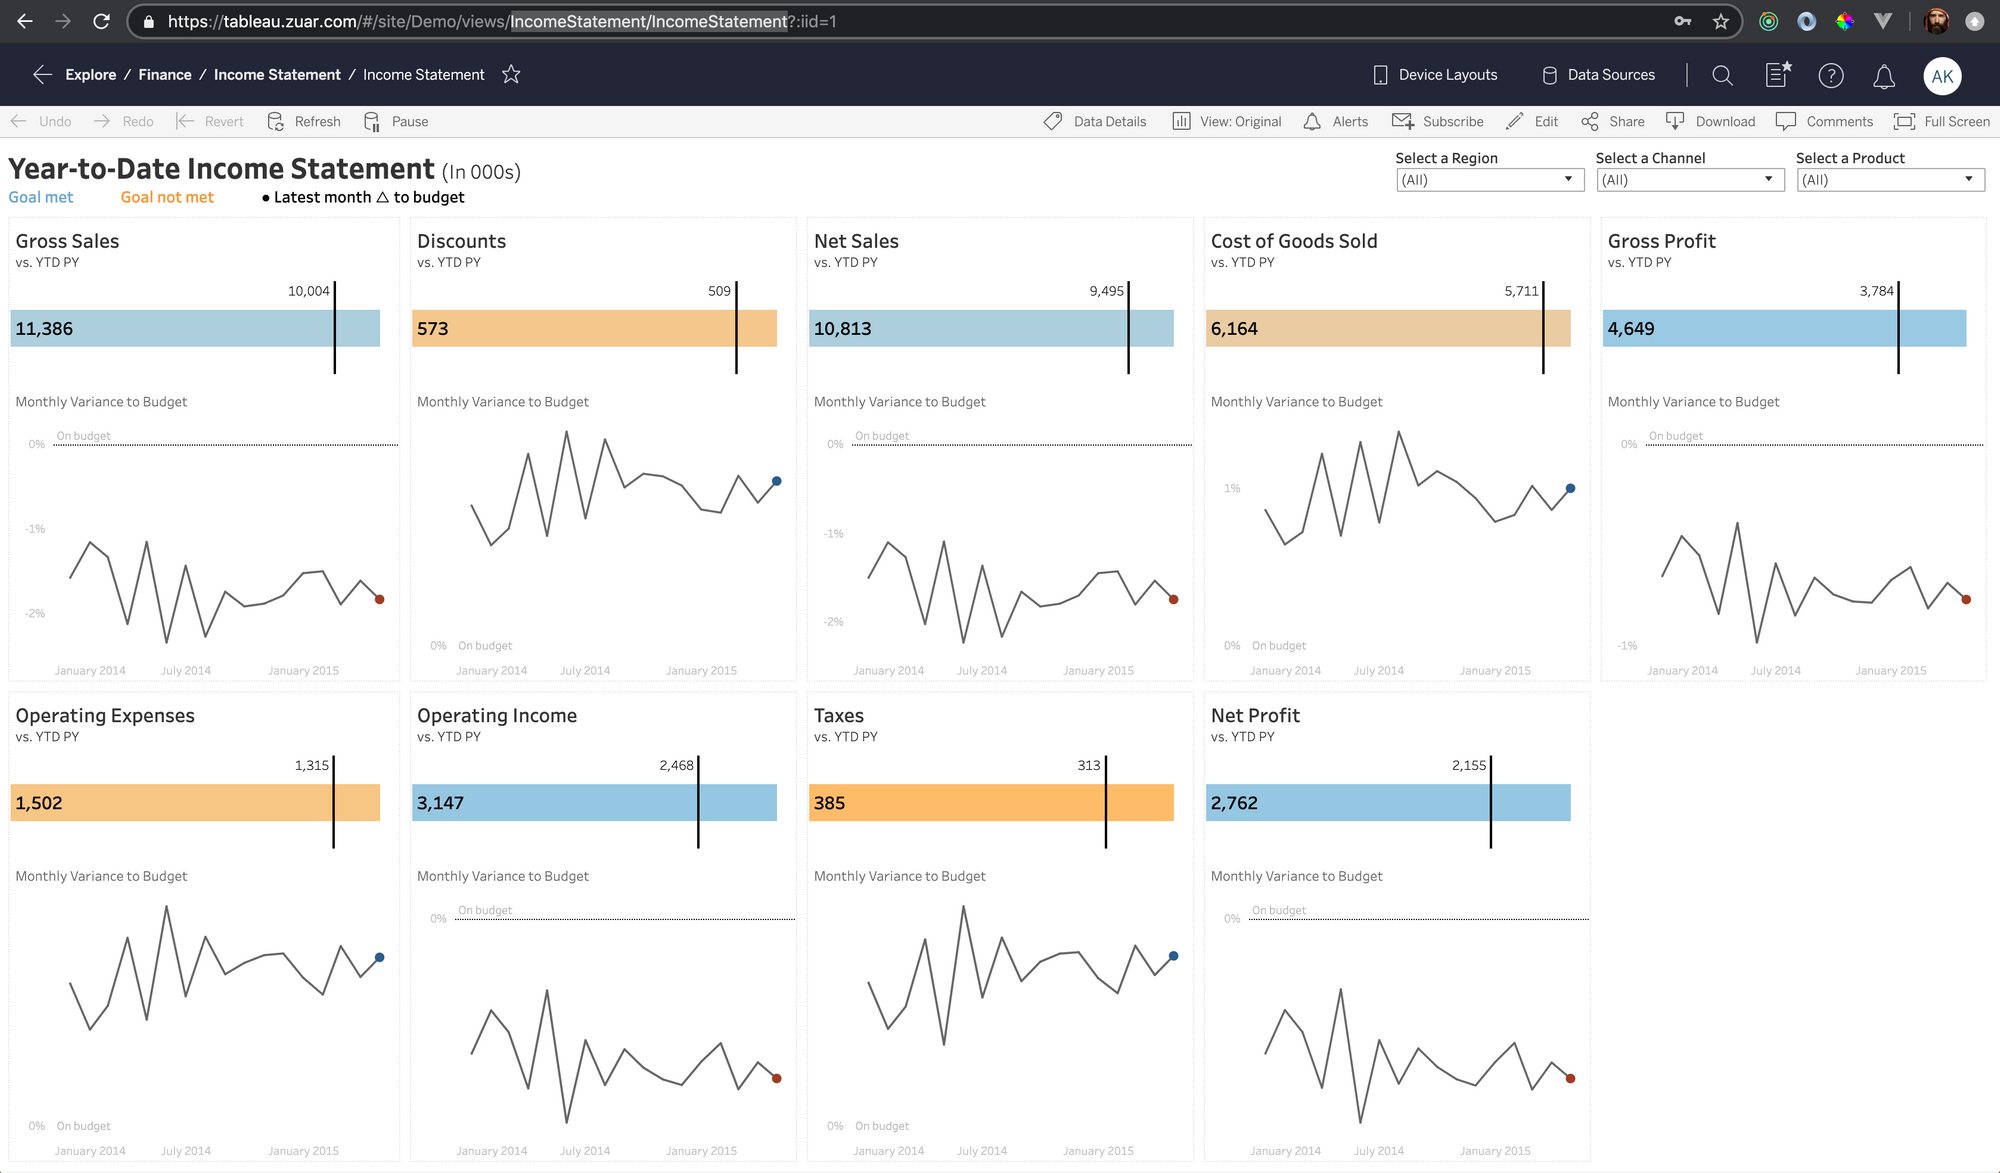 Sample Workbook from Tableau Demo